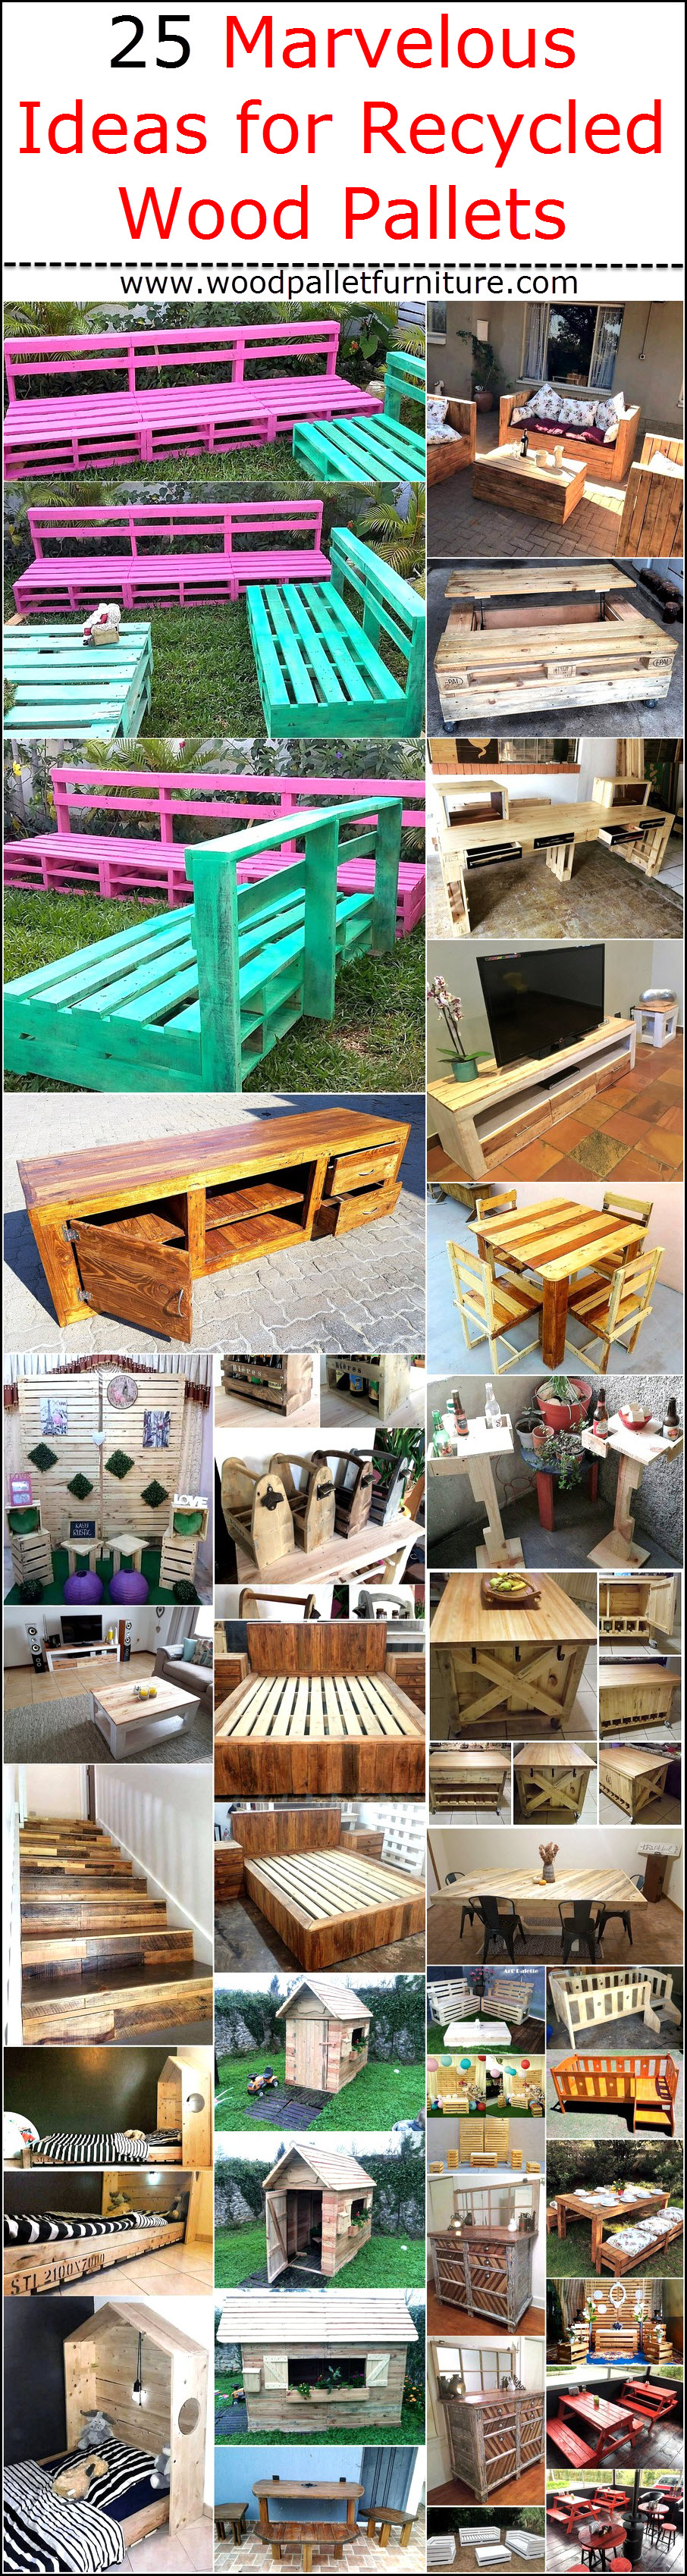 25-marvelous-ideas-for-recycled-wood-pallets